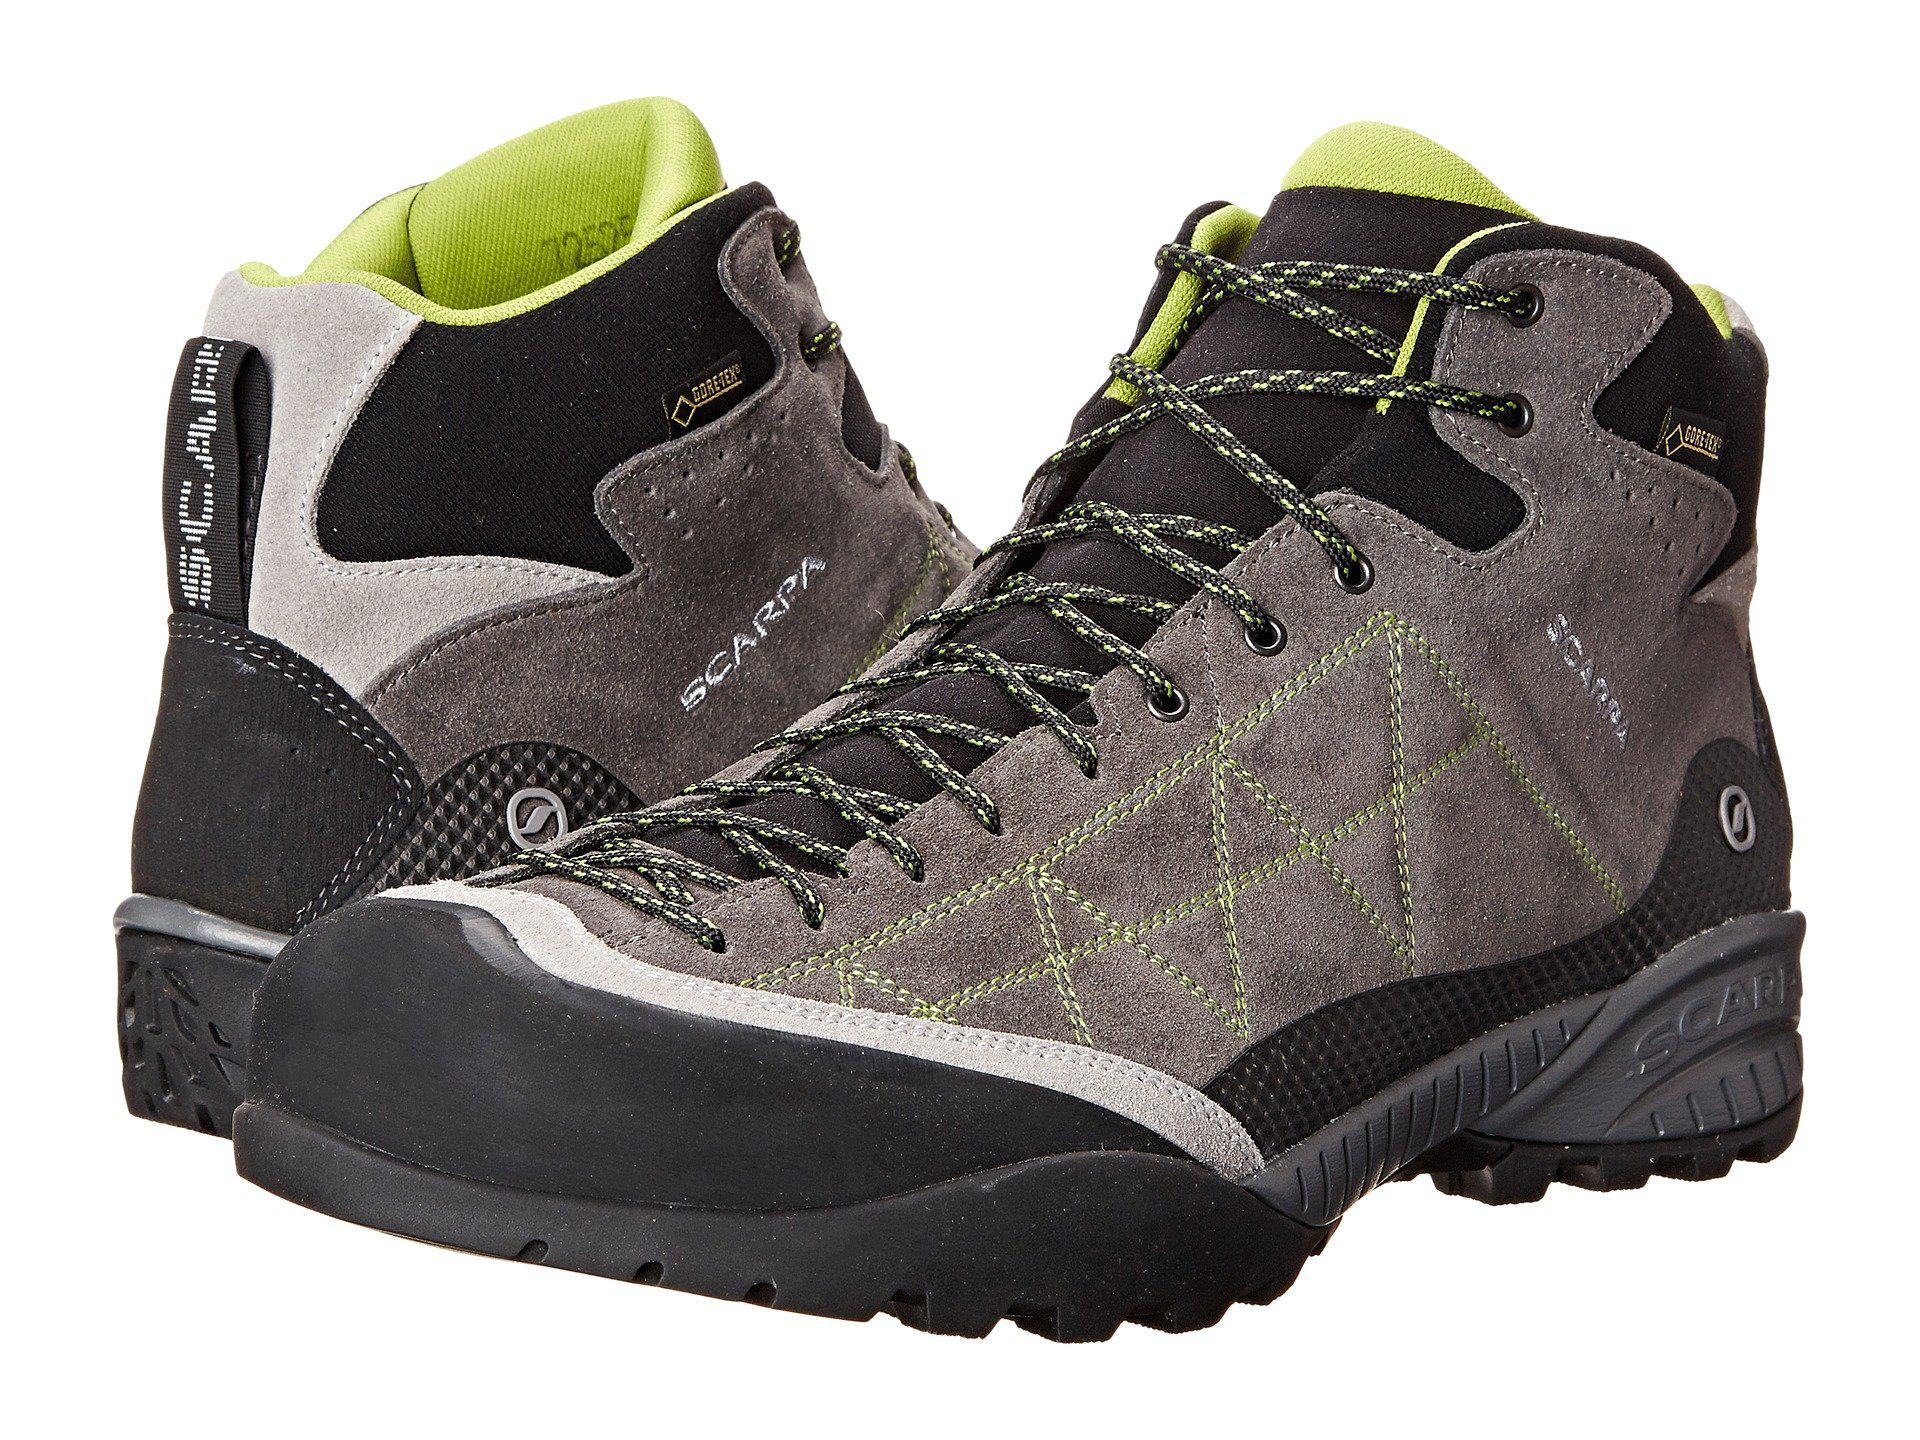 2110addd08 Lyst - SCARPA Zen Pro Mid Gtx(r) (shark spring) Men s Shoes in Gray ...